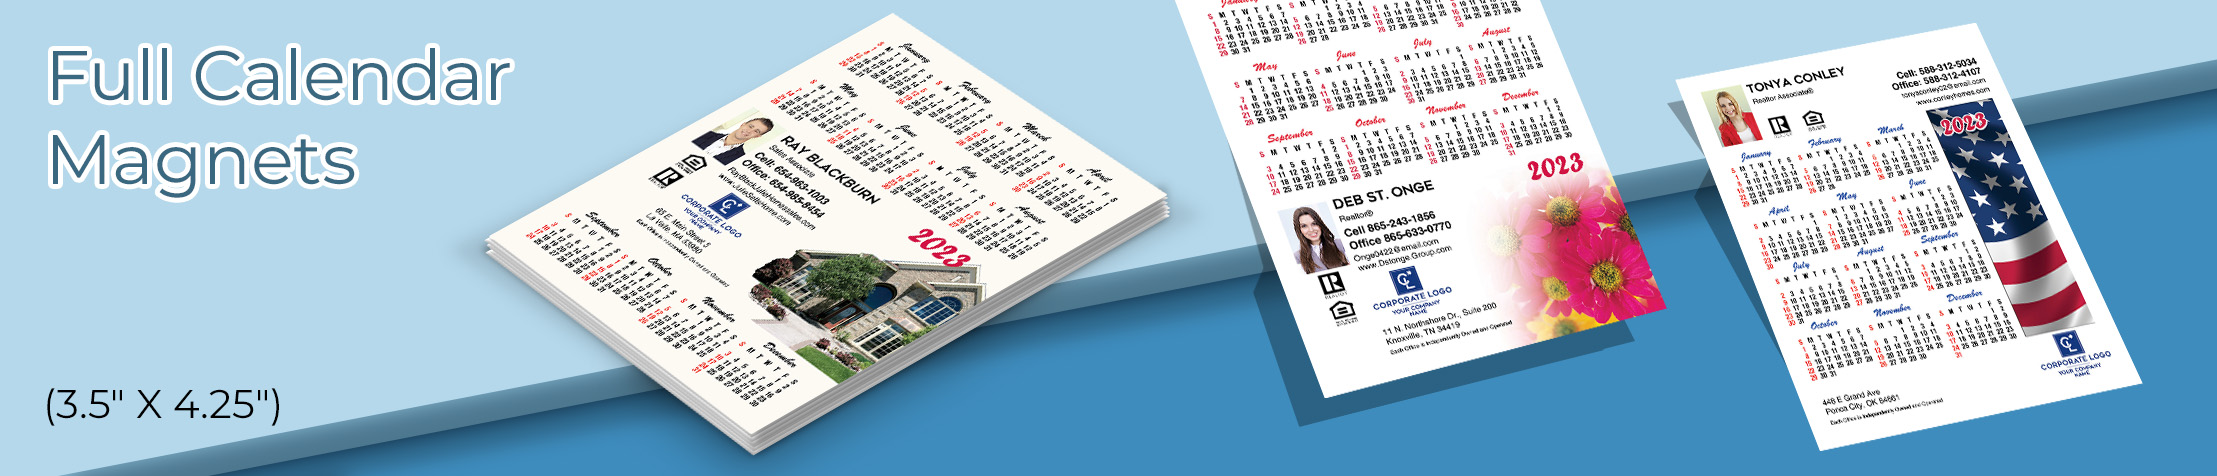 "Coldwell Banker Real Estate Full Calendar Magnets - Coldwell Banker 2019 calendars, 3.5"" by 4.25"" 